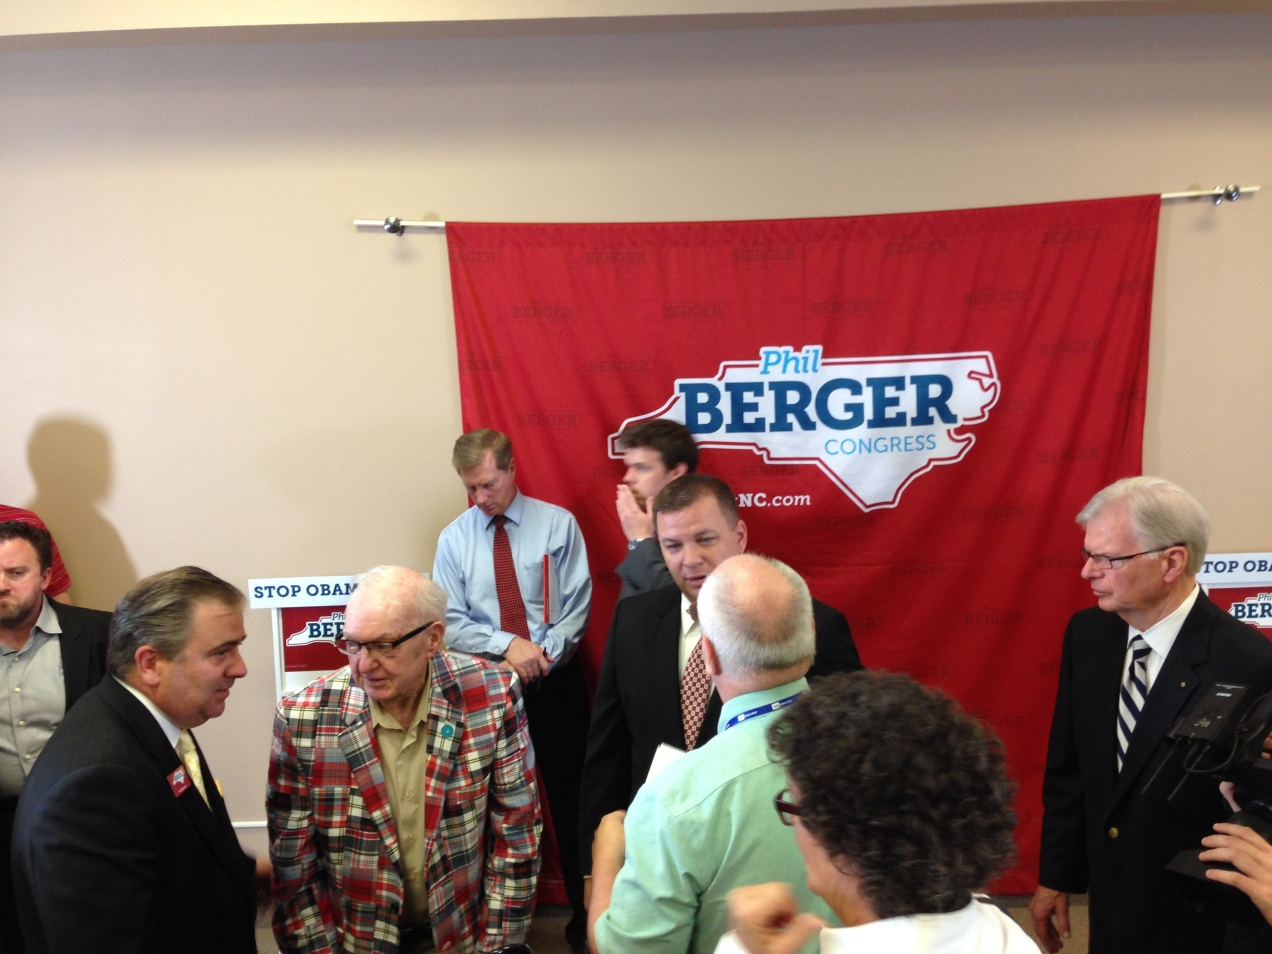 Congressman Coble and Phil Berger, Jr. after the Endorsement